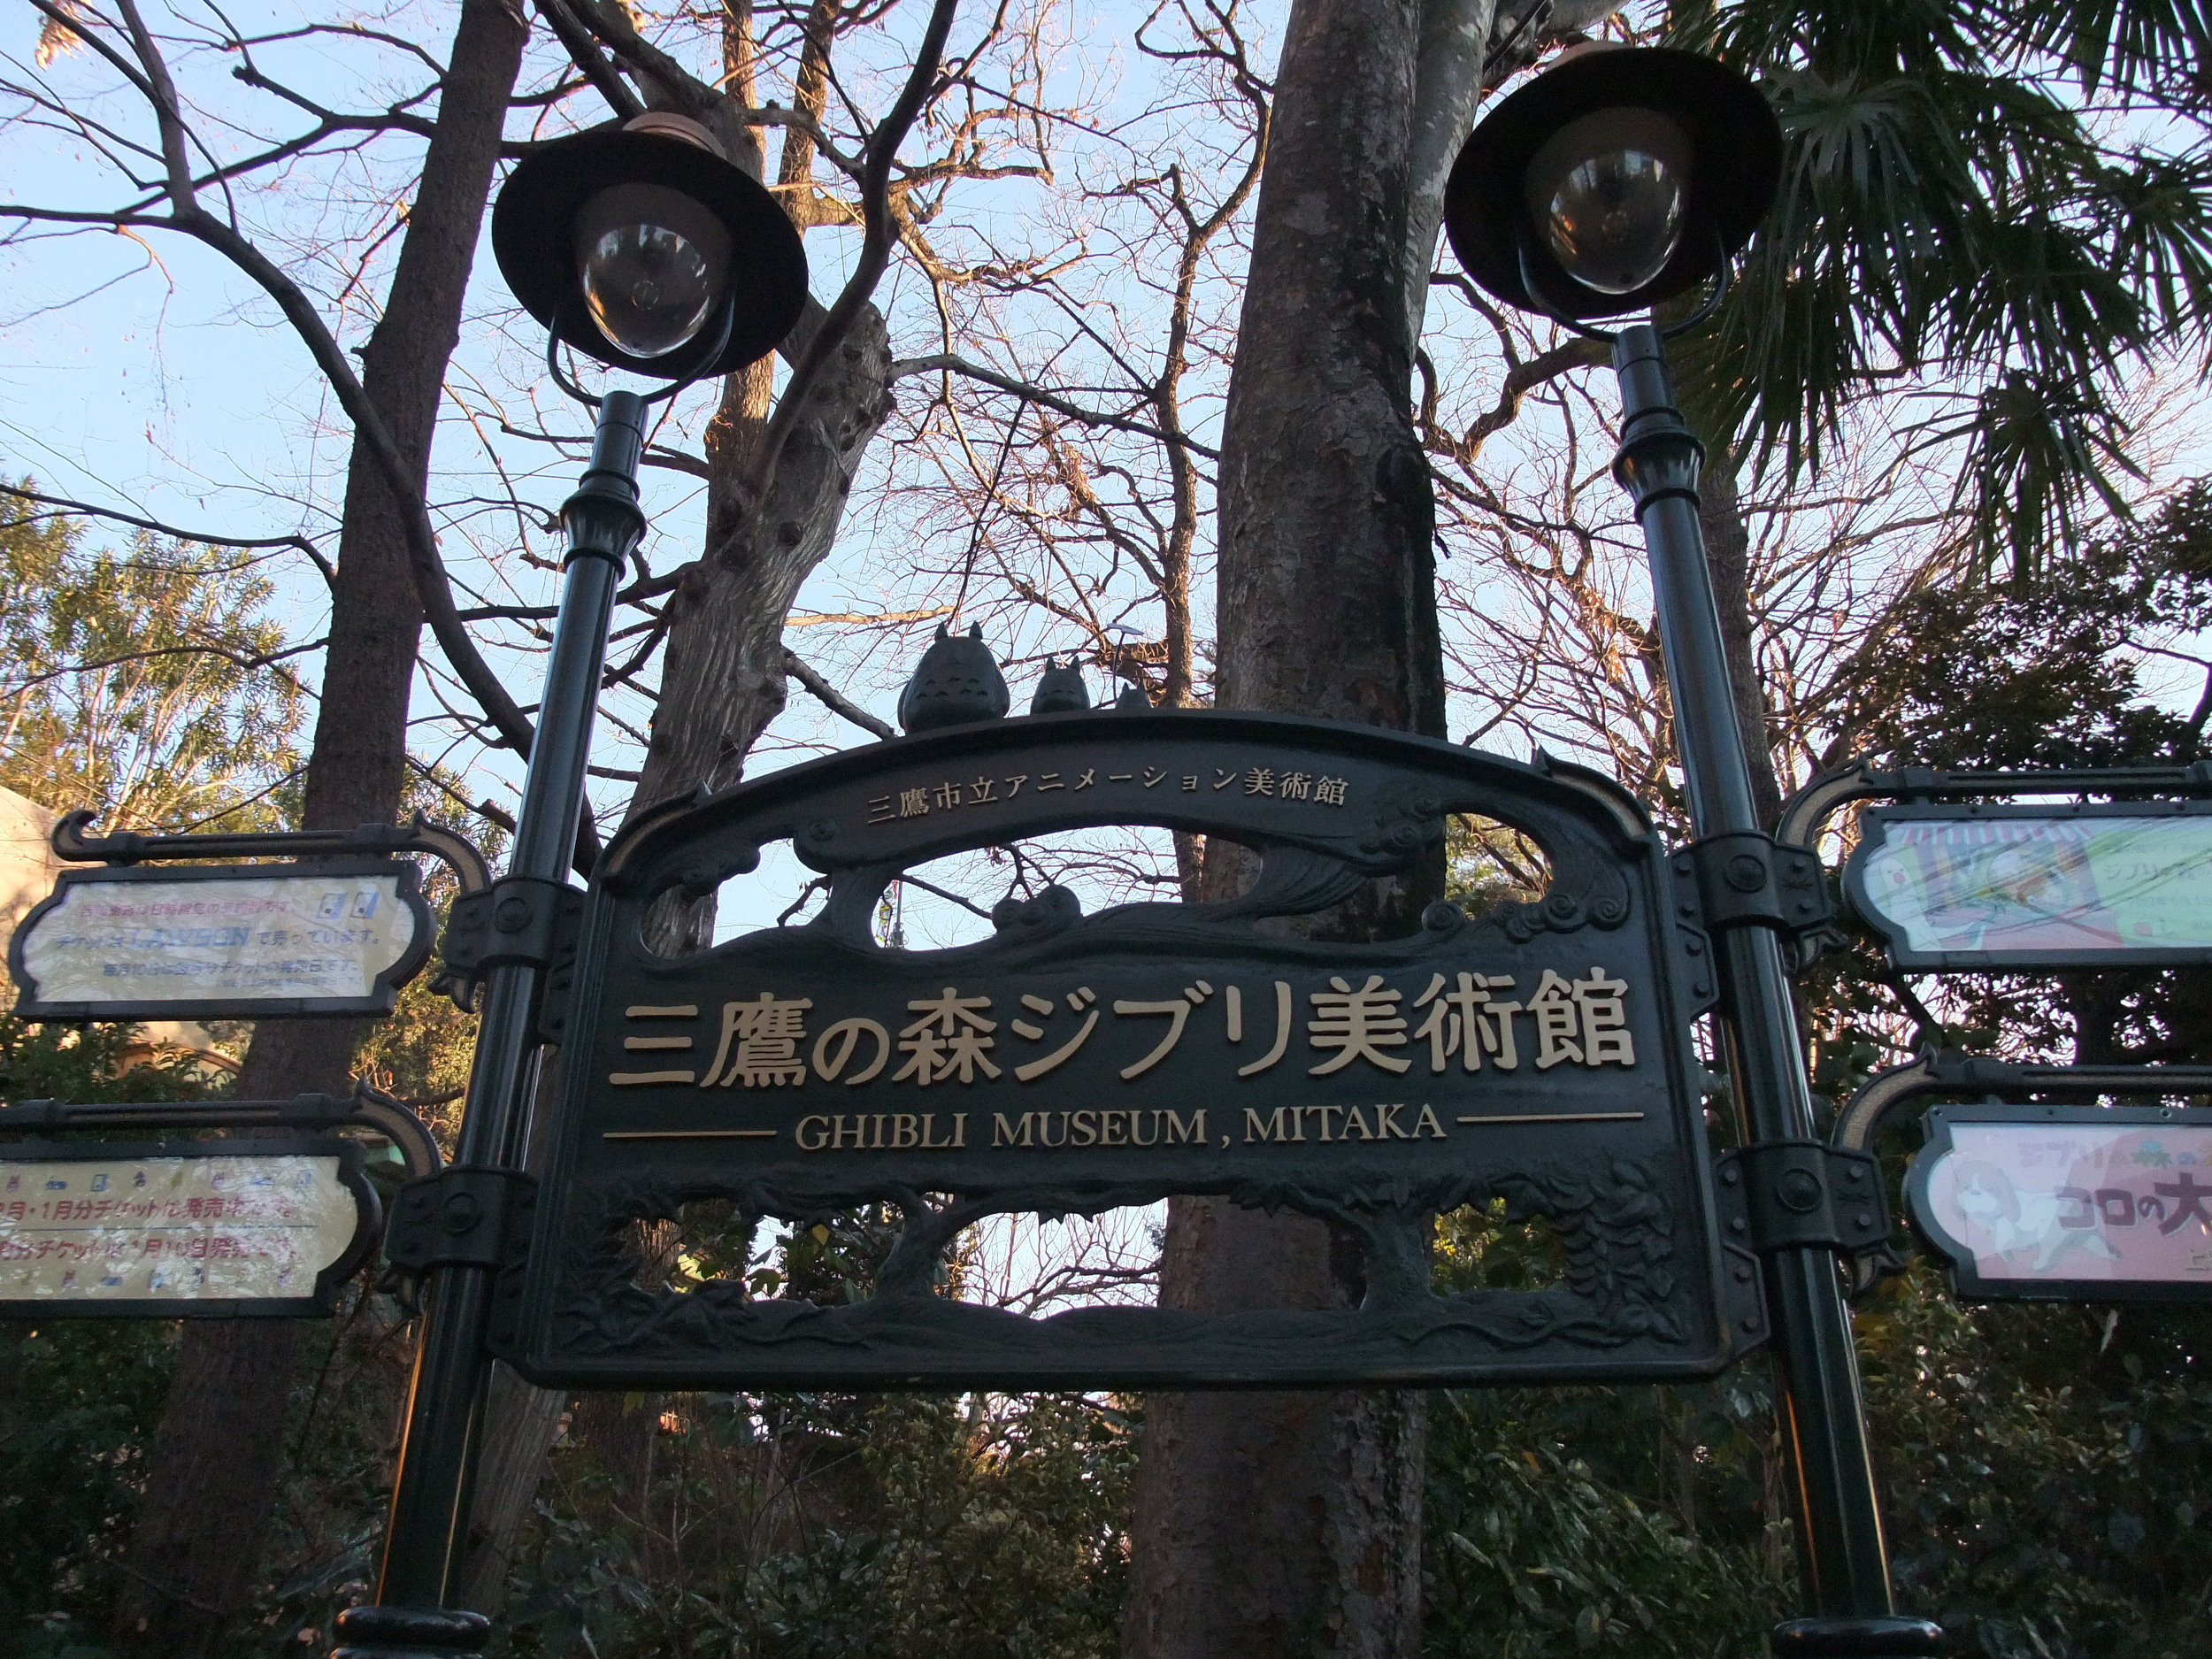 Entrance to the Studio Ghibli Museum